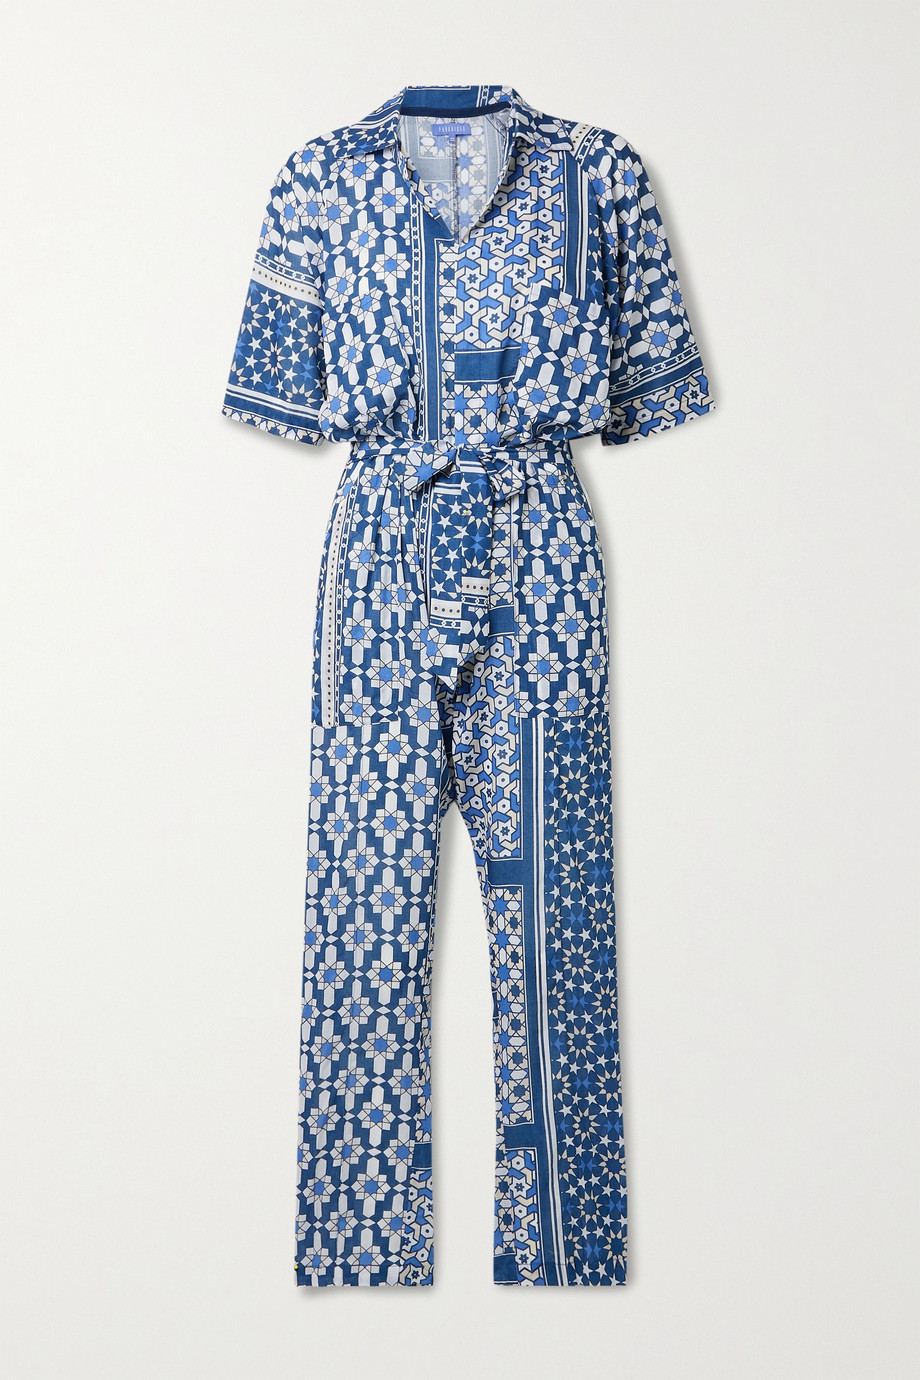 Paradised + NET SUSTAIN Apres belted printed voile jumpsuit